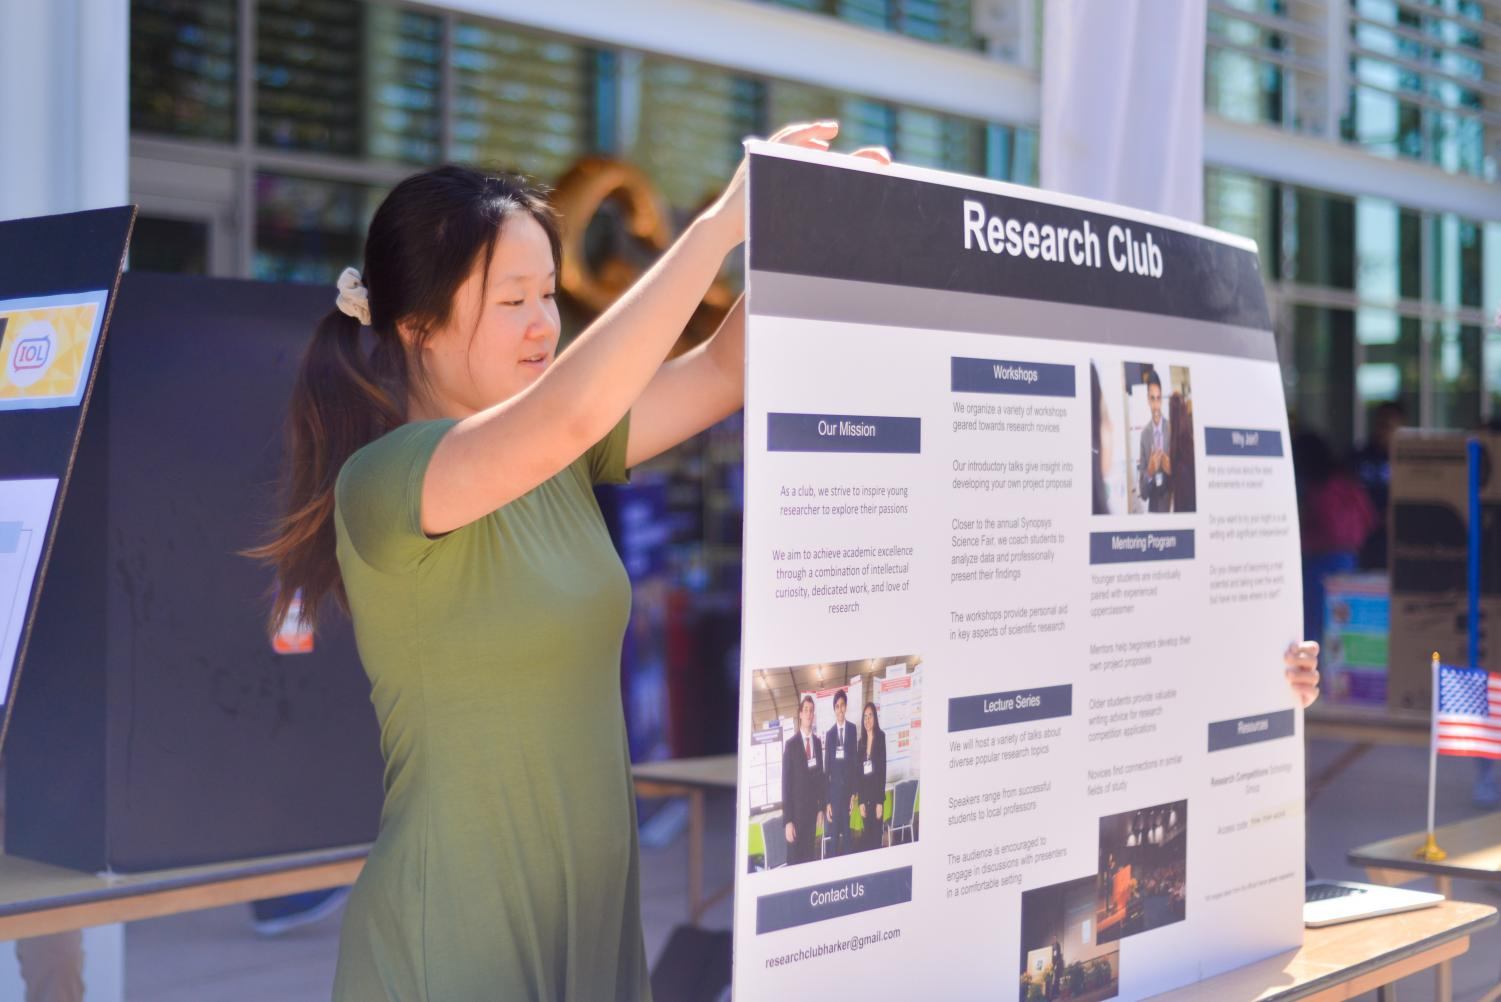 Cynthia+Chen+%2812%29+readjusts+the+board+for+Research+Club+at+Club+Fair+today+during+lunch.+Club+Fair+featured+a+variety+of+student+organizations%2C+ranging+from+STEM+to+business+to+student+activism+groups%2C+and+invited+students+to+sign+up+for+clubs+that+aligned+with+their+interests.+